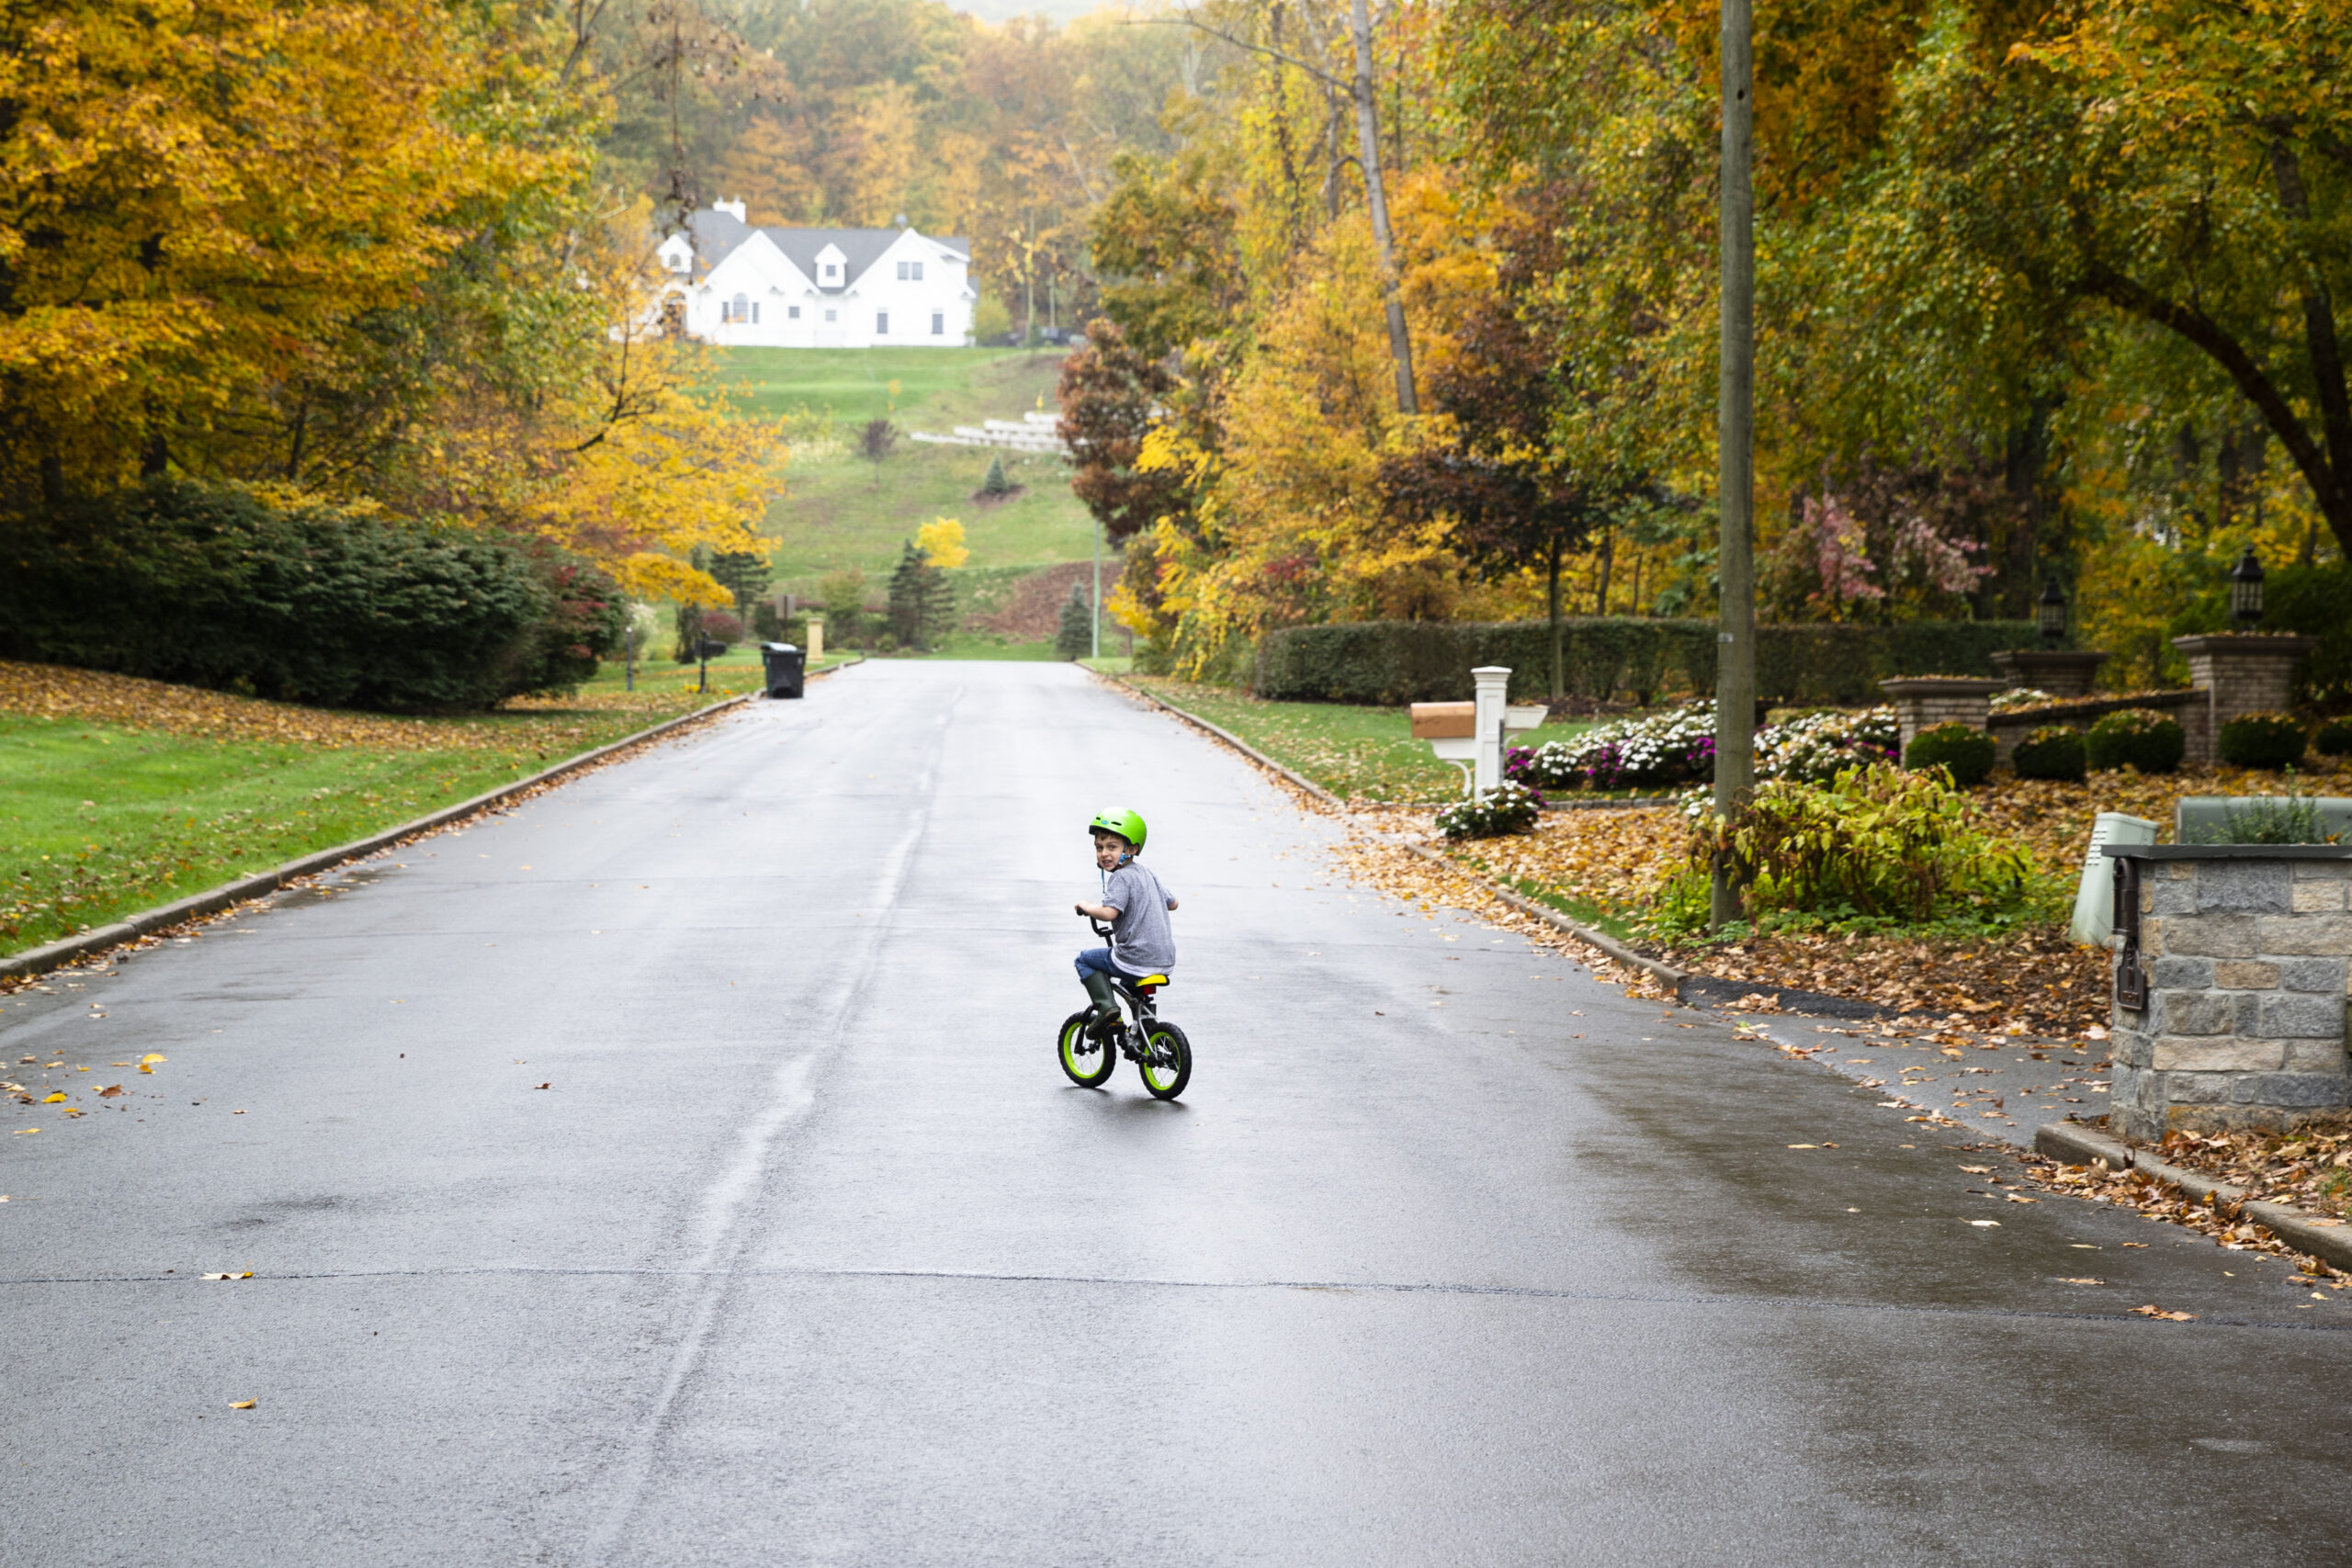 Owen Couture riding a bike in the street near his home.